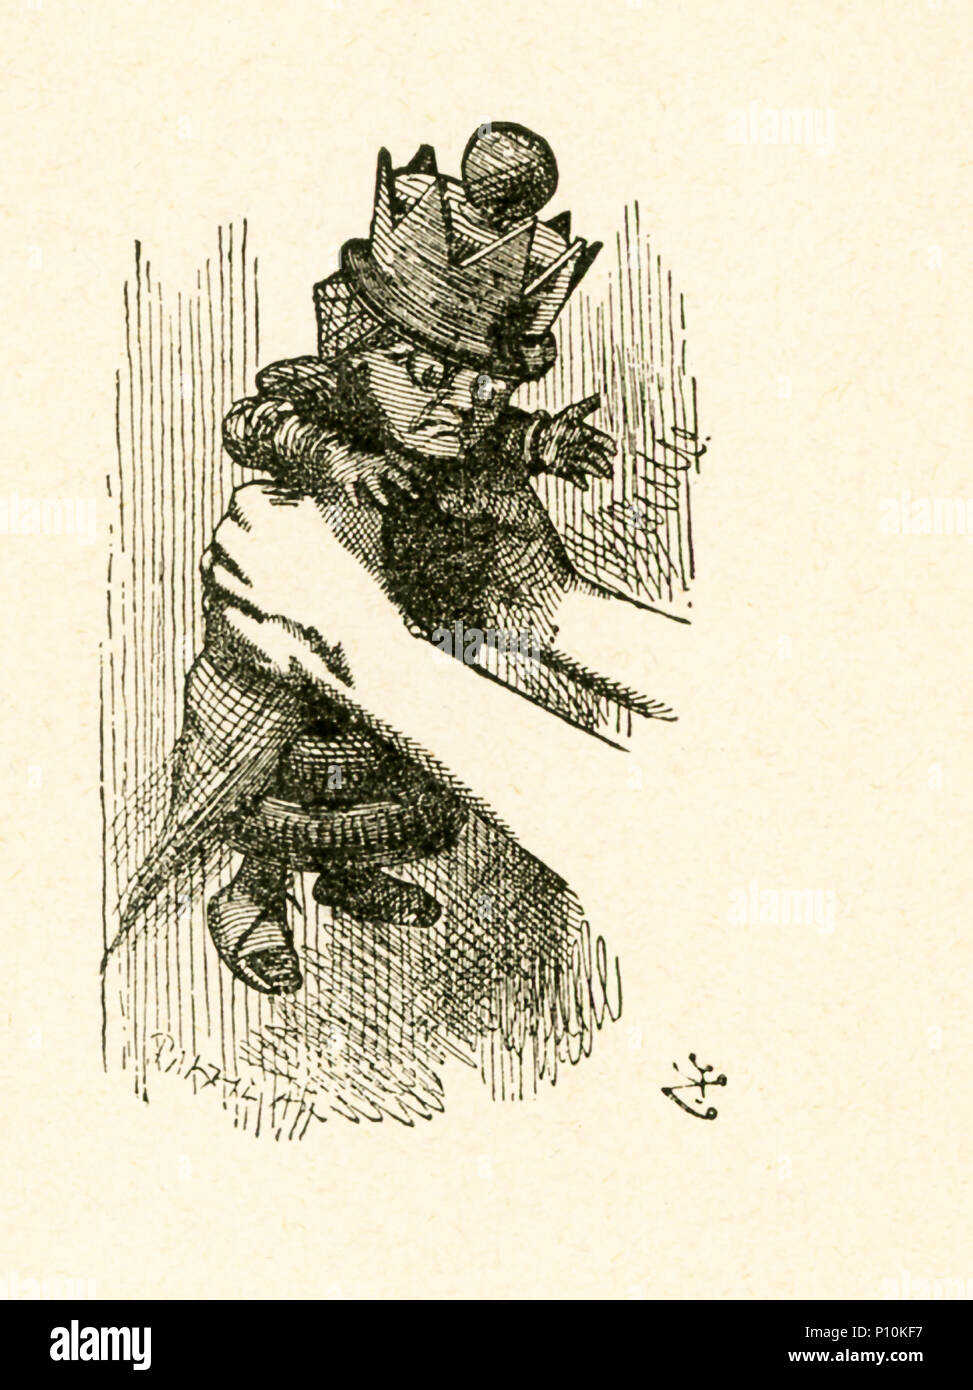 This illustration of Alice holding the Red Queen is from 'Through the Looking-Glass and What Alice Found There' by Lewis Carroll (Charles Lutwidge Dodgson), who wrote this novel in 1871 as a sequel to 'Alice's Adventures in Wonderland.' - Stock Image